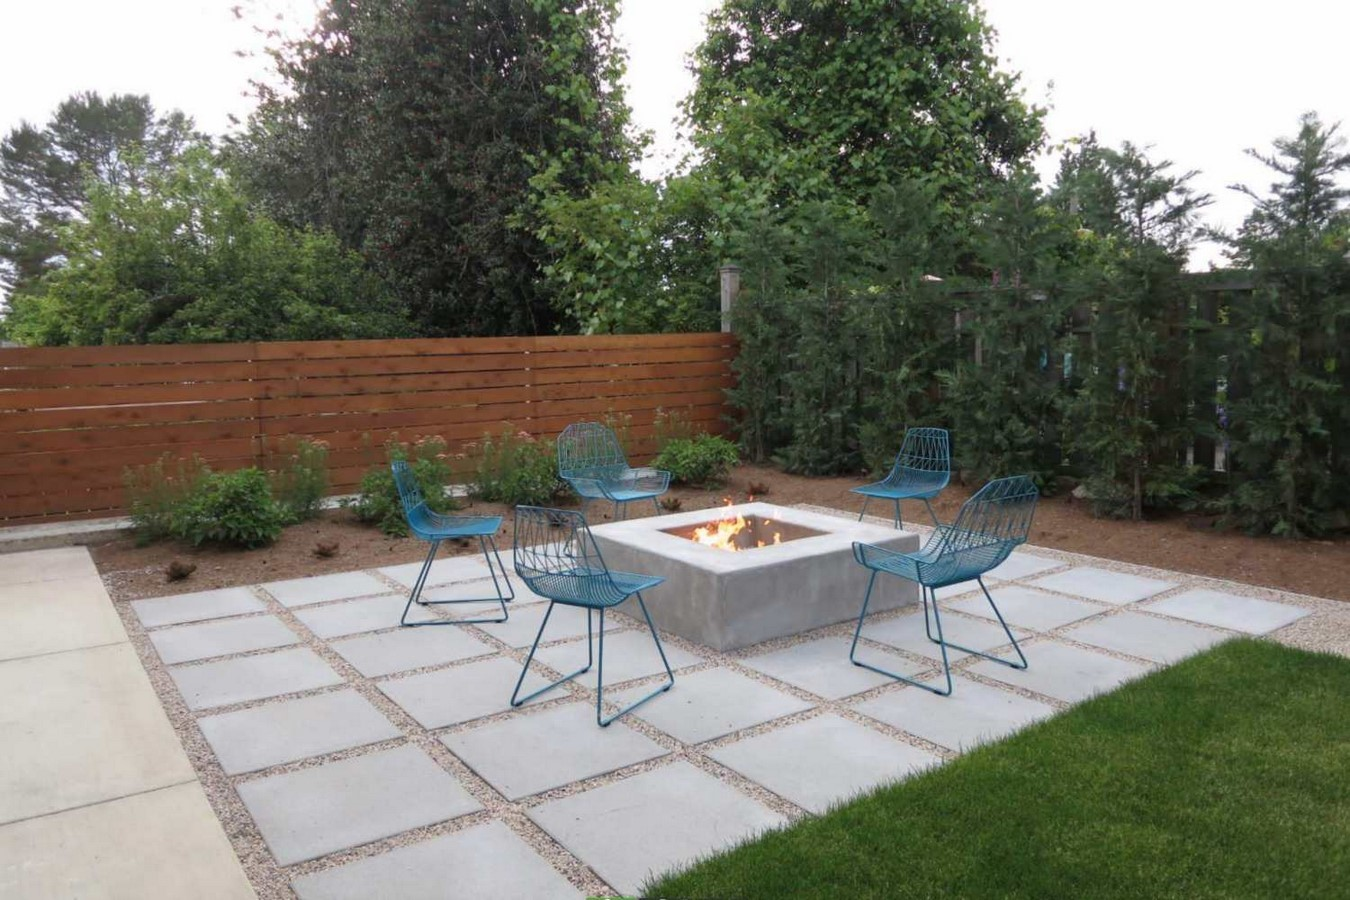 50 Ideas and Tips for Landscaping - Sheet31